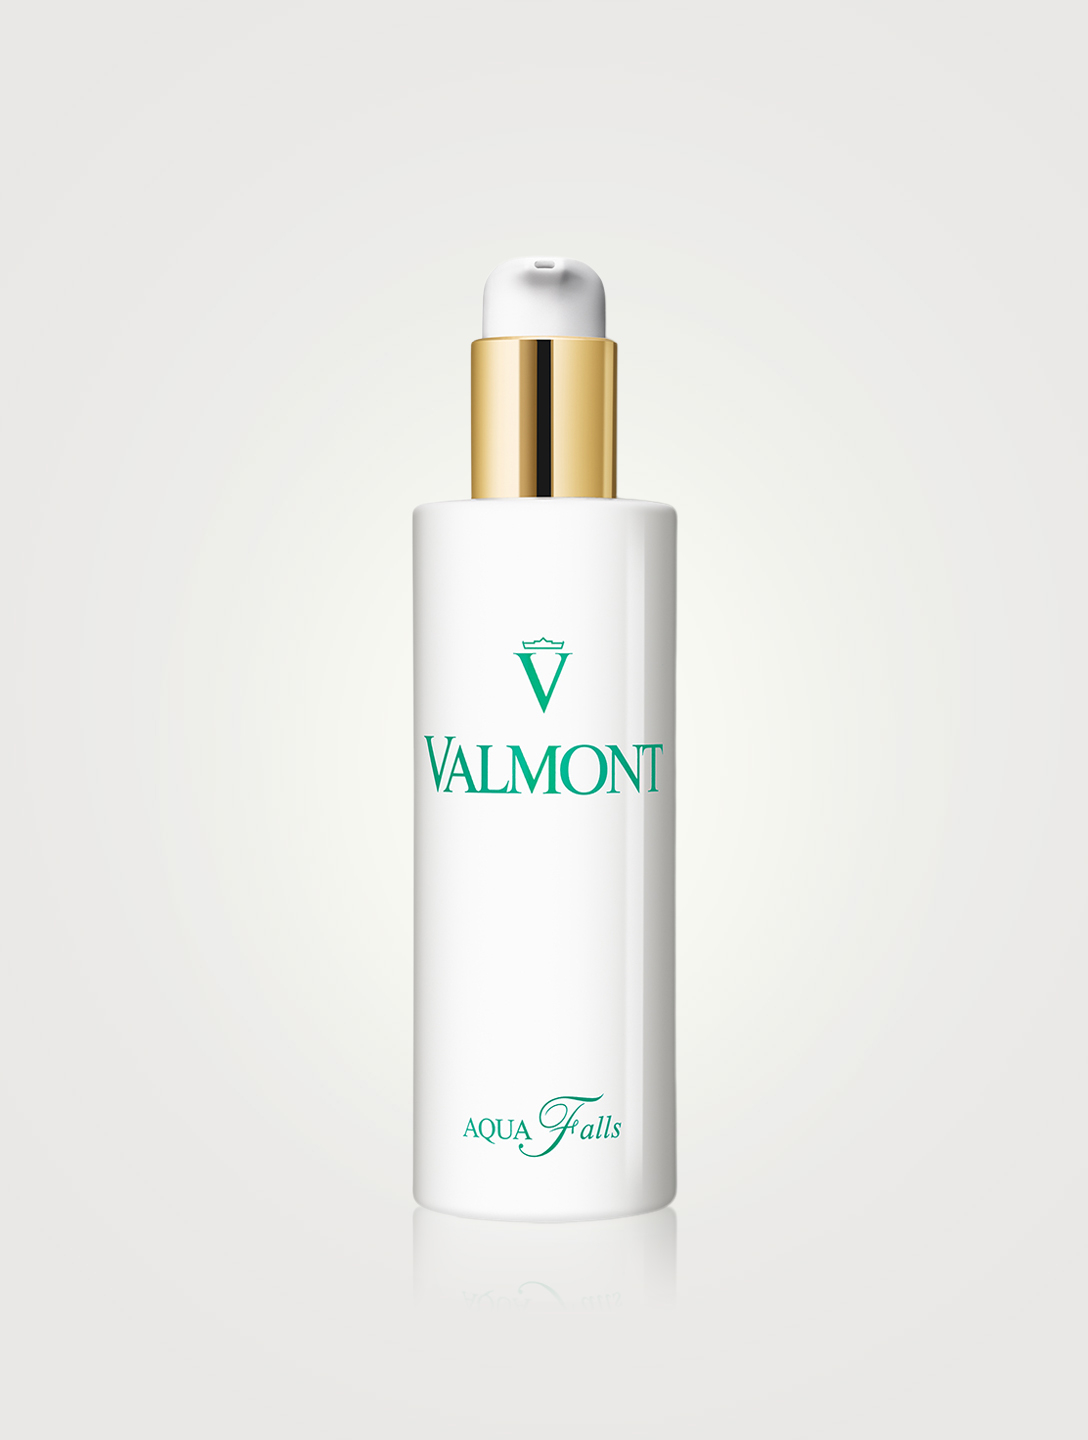 VALMONT Instant Makeup Removing Water Designers